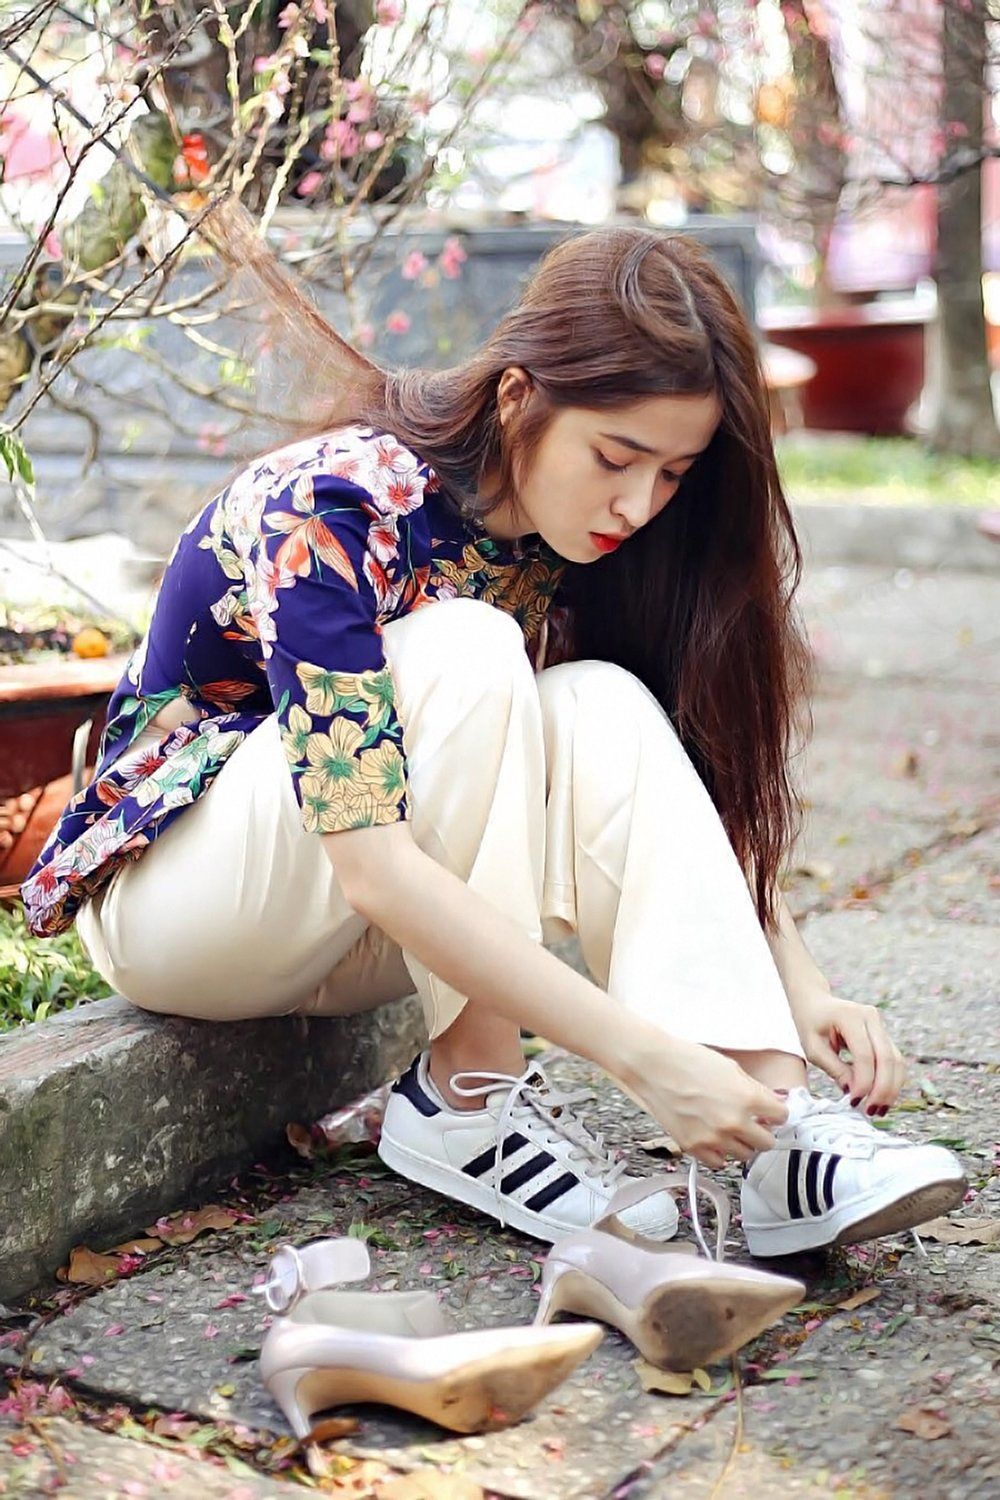 adidas-attractive-beautiful-2090887.jpg